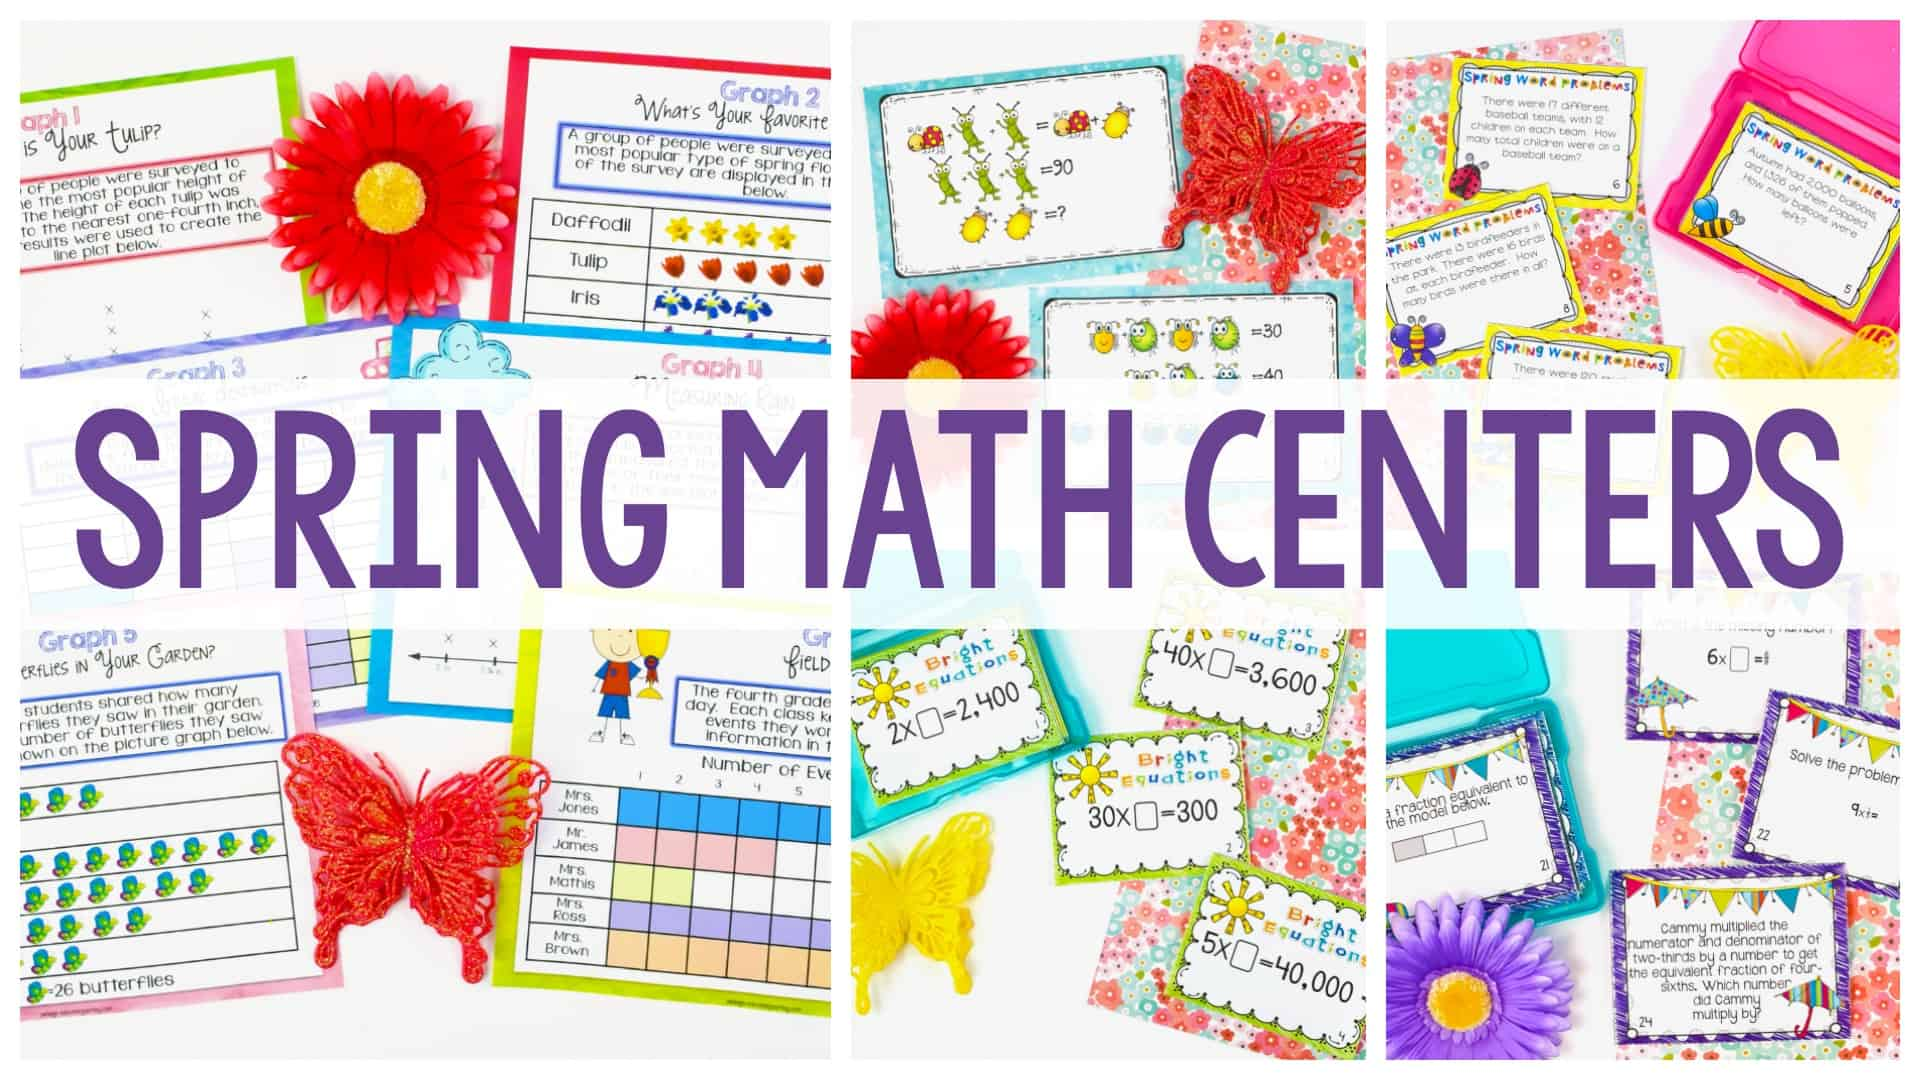 Spring Math Centers graphic with colorful spring-themed worksheets and decorations in the background.